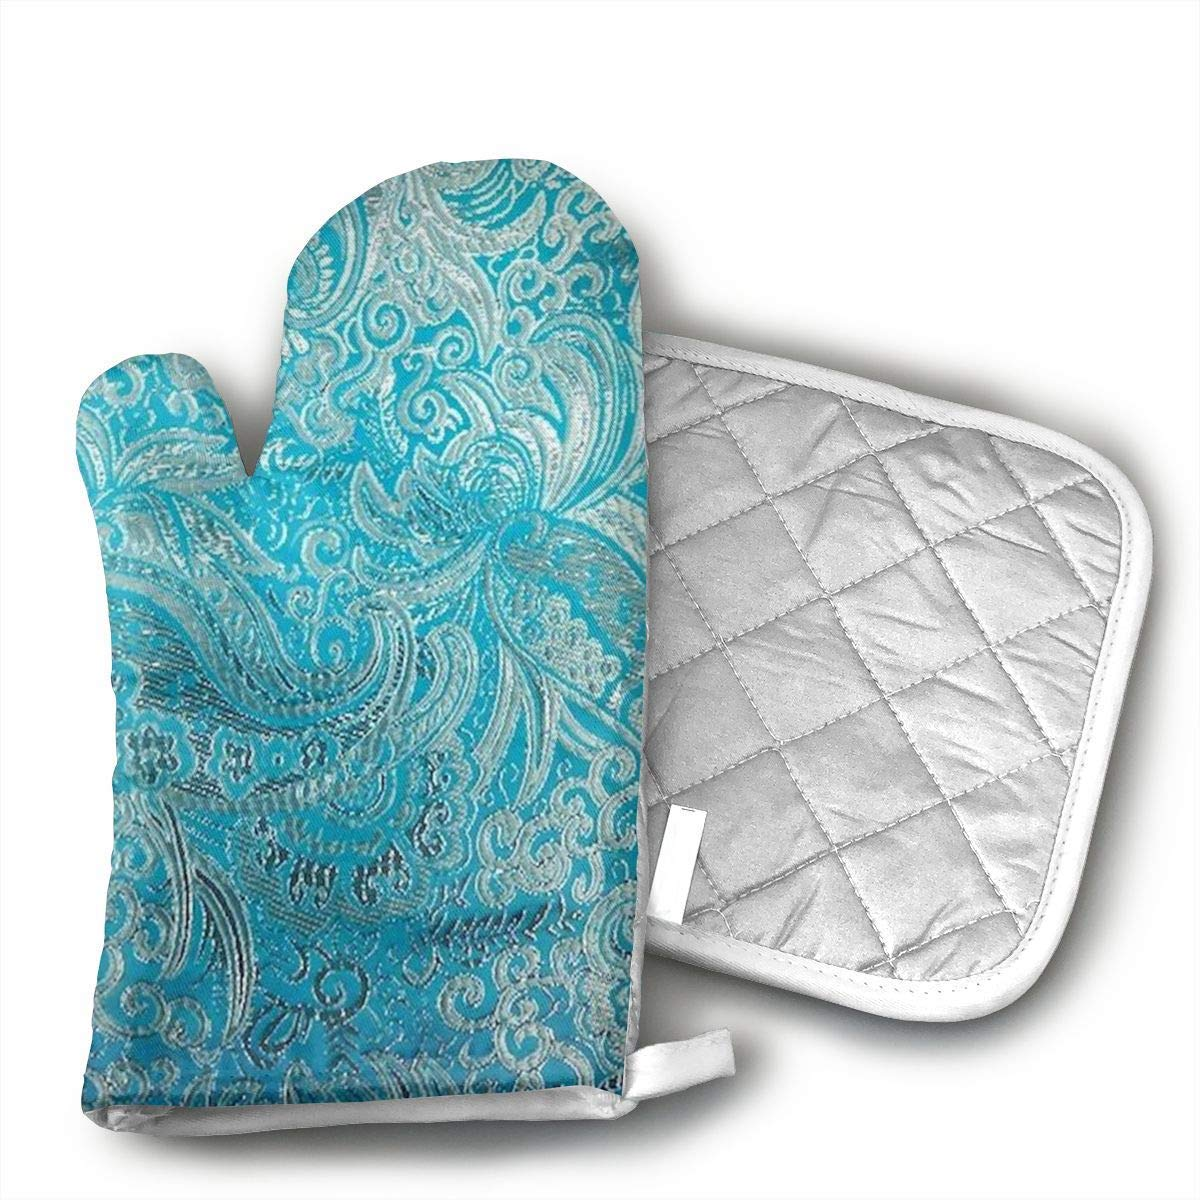 NoveltyGloves Turquoise Paisley Oven Mitts,Professional Heat Resistant Microwave BBQ Oven Insulation Thickening Cotton Gloves Baking Pot Mitts Soft Inner Lining Kitchen Cooking